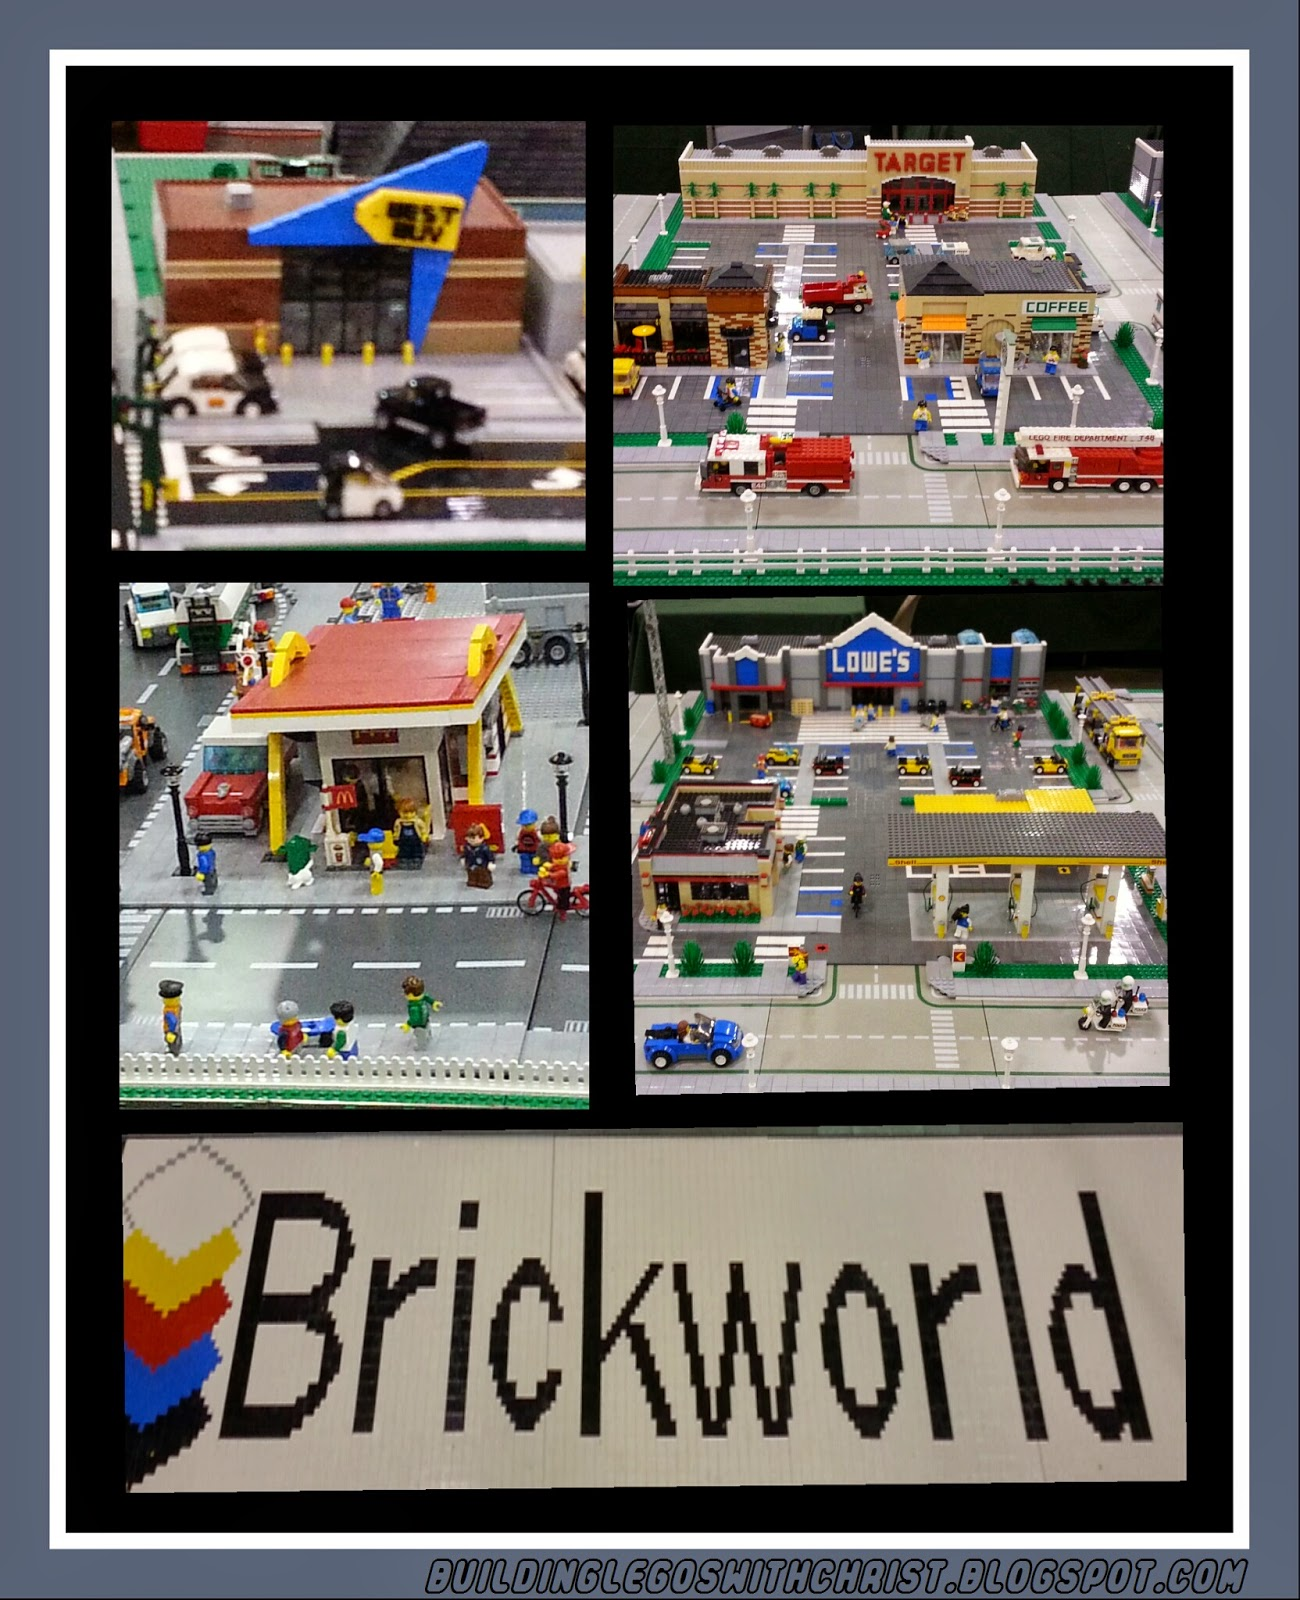 Brickworld 2014, Lego Best Buy, Lego Target, Lego McDonalds, Lego Lowes